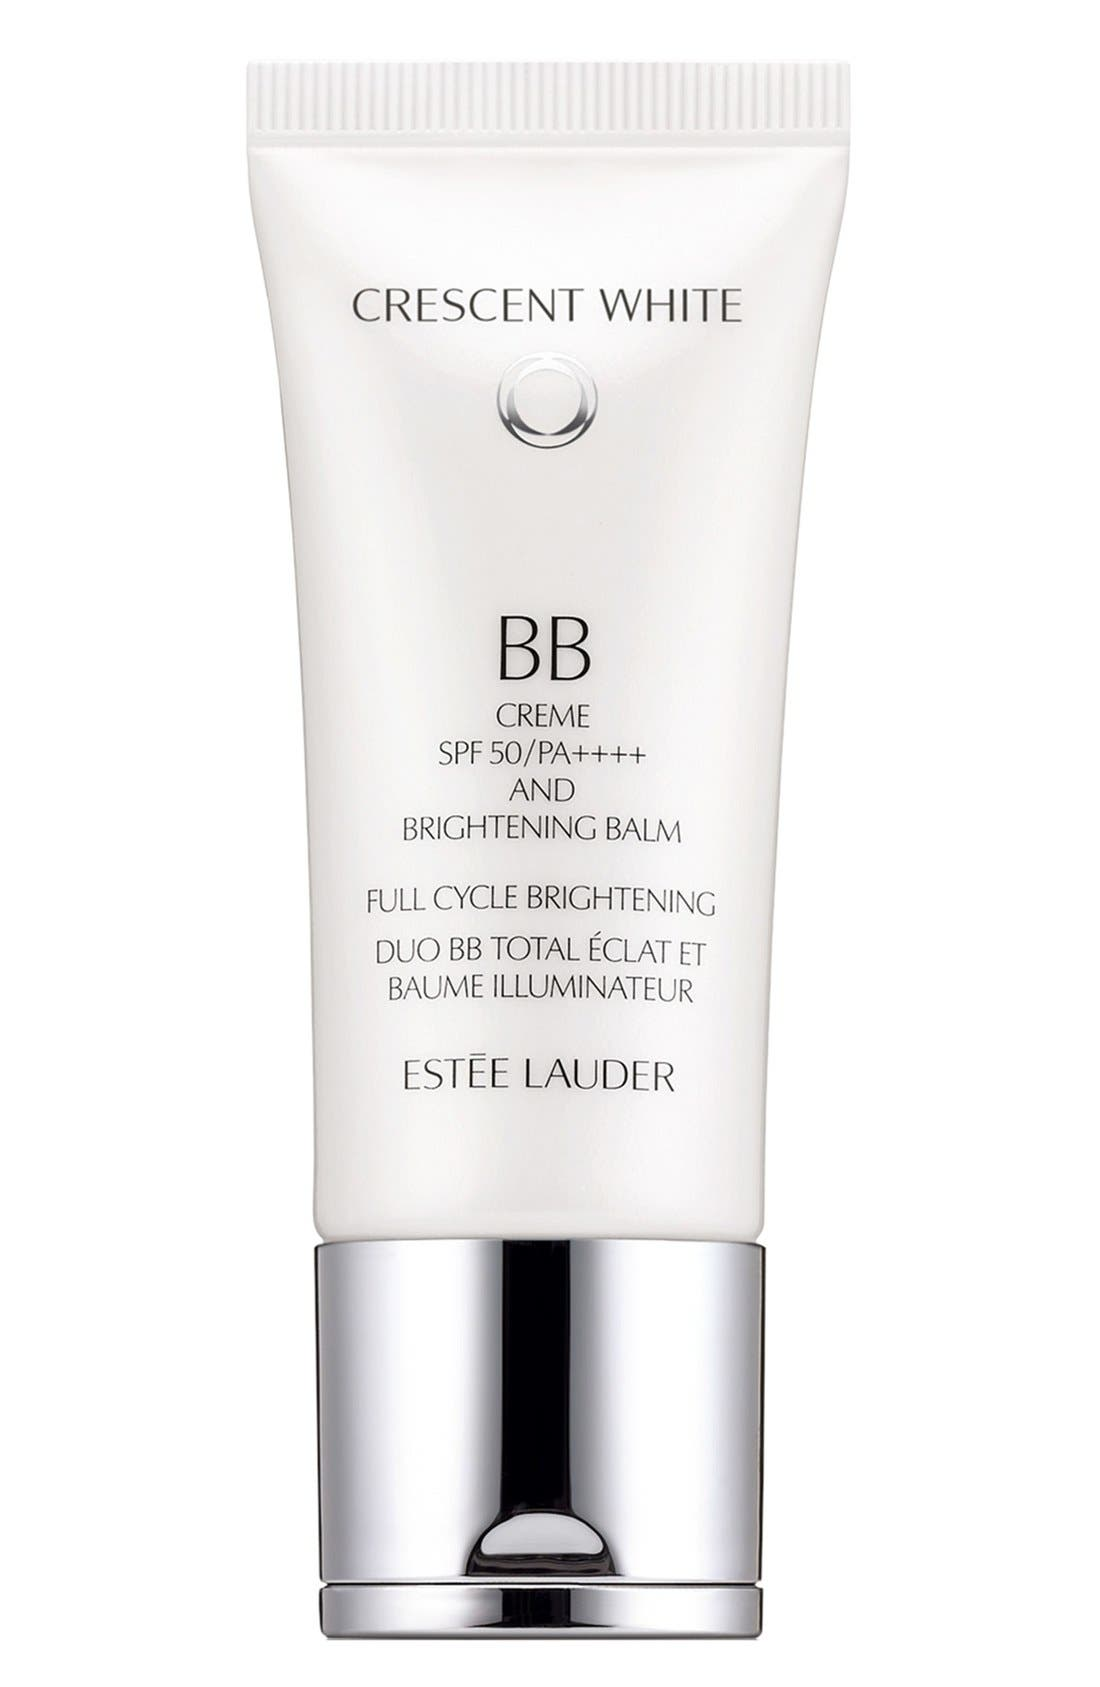 'Crescent White' Full Cycle BB Créme & Brightening Balm SPF 50,                         Main,                         color, 000